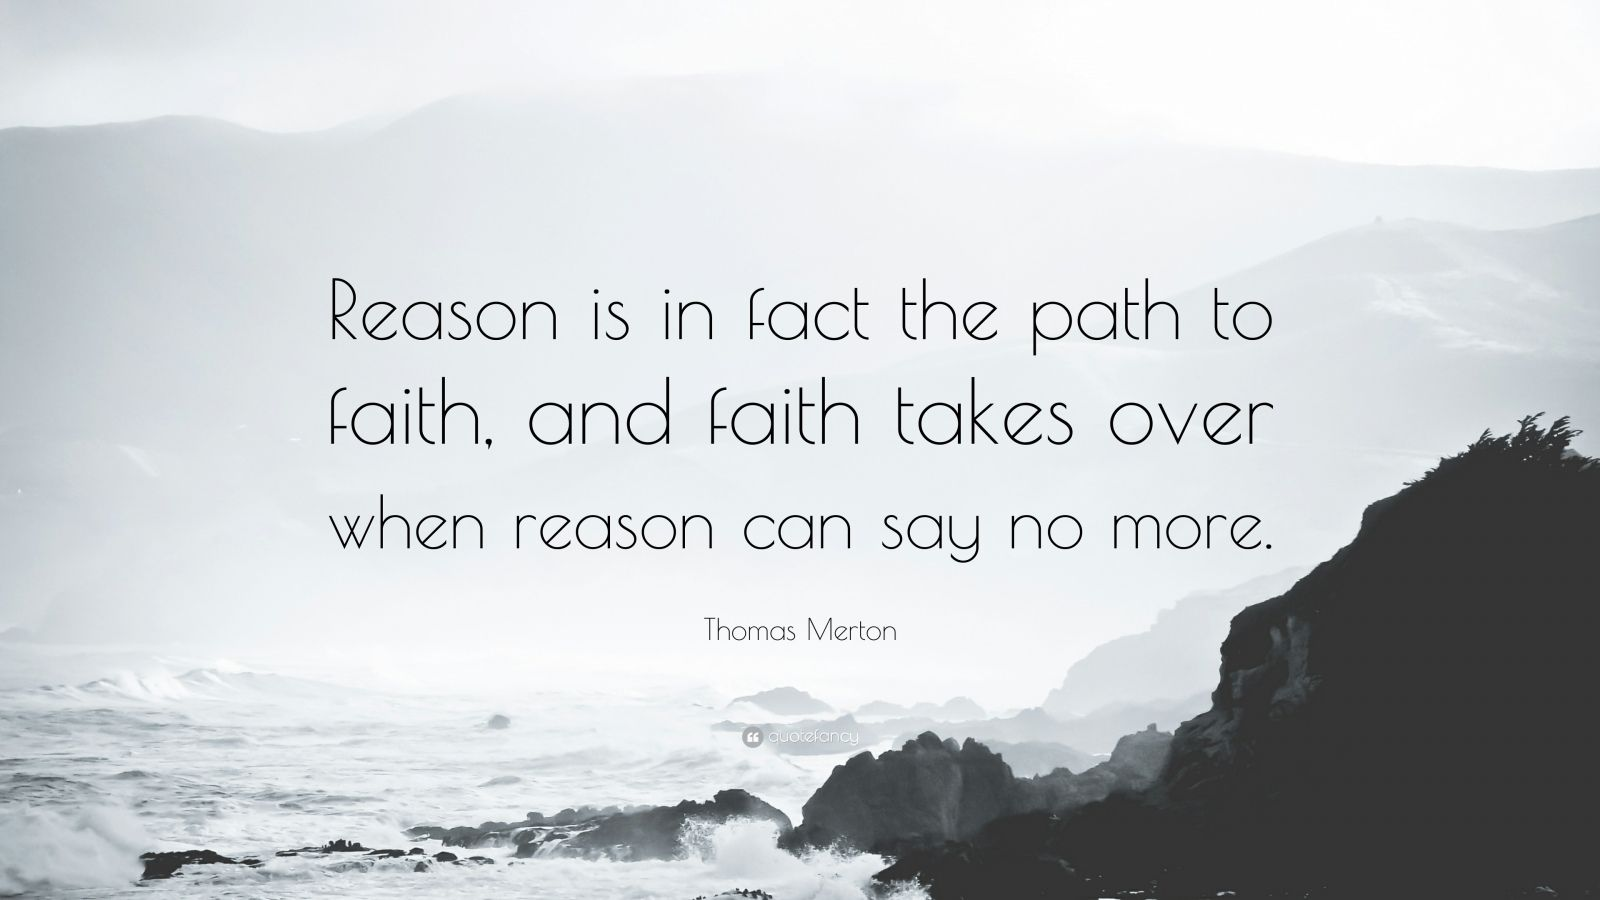 """Thomas Merton Quote: """"Reason is in fact the path to faith, and faith takes over when reason can say no more."""""""